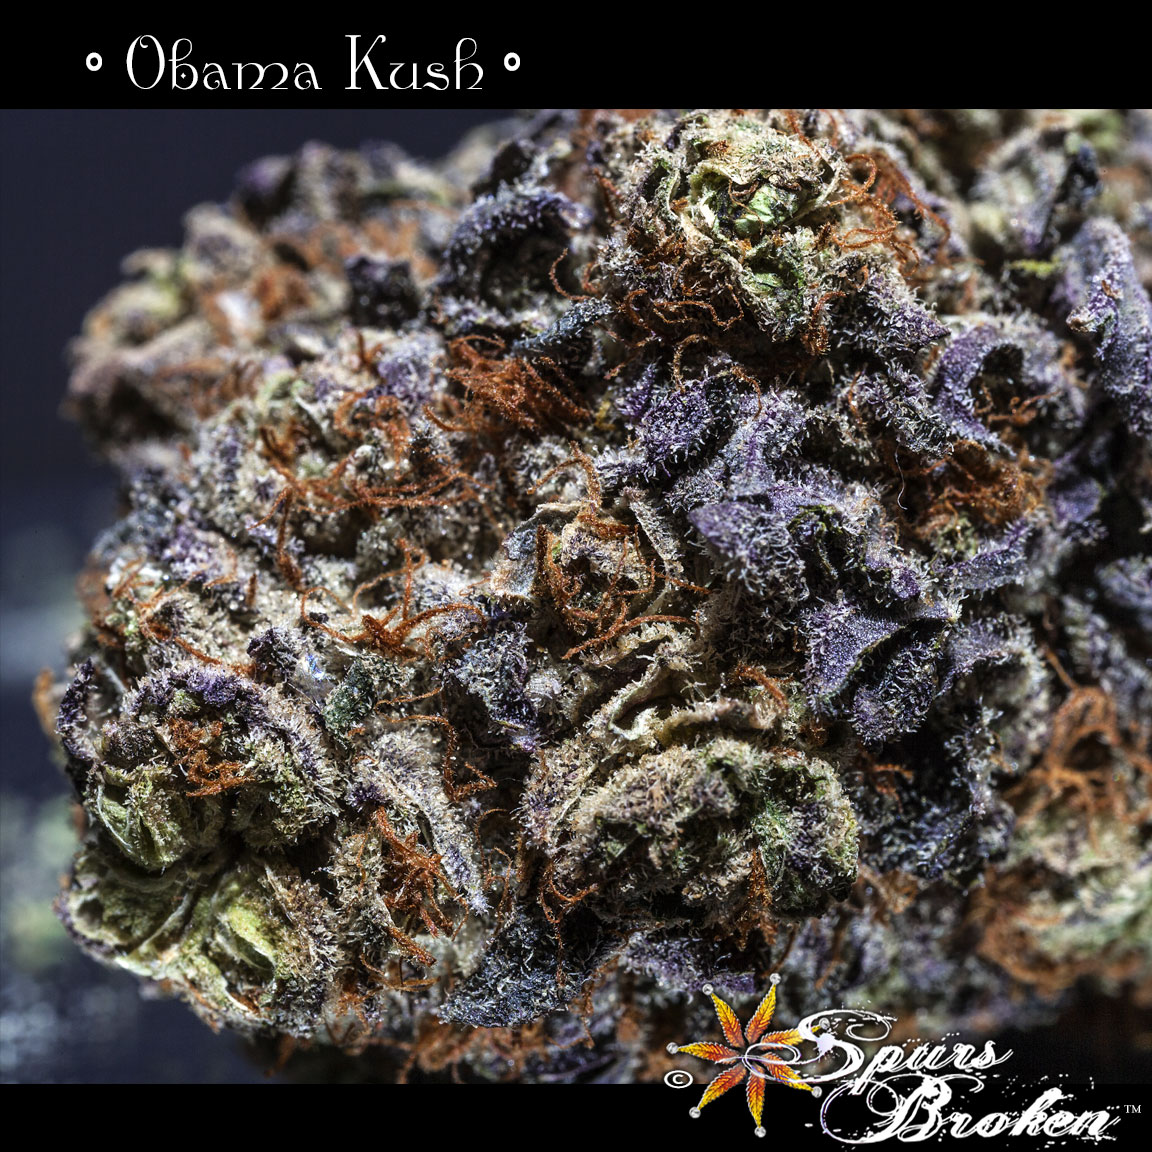 Obama Kush- Cannabis Macro Photography by Spurs Broken (Robert R. Sanders)